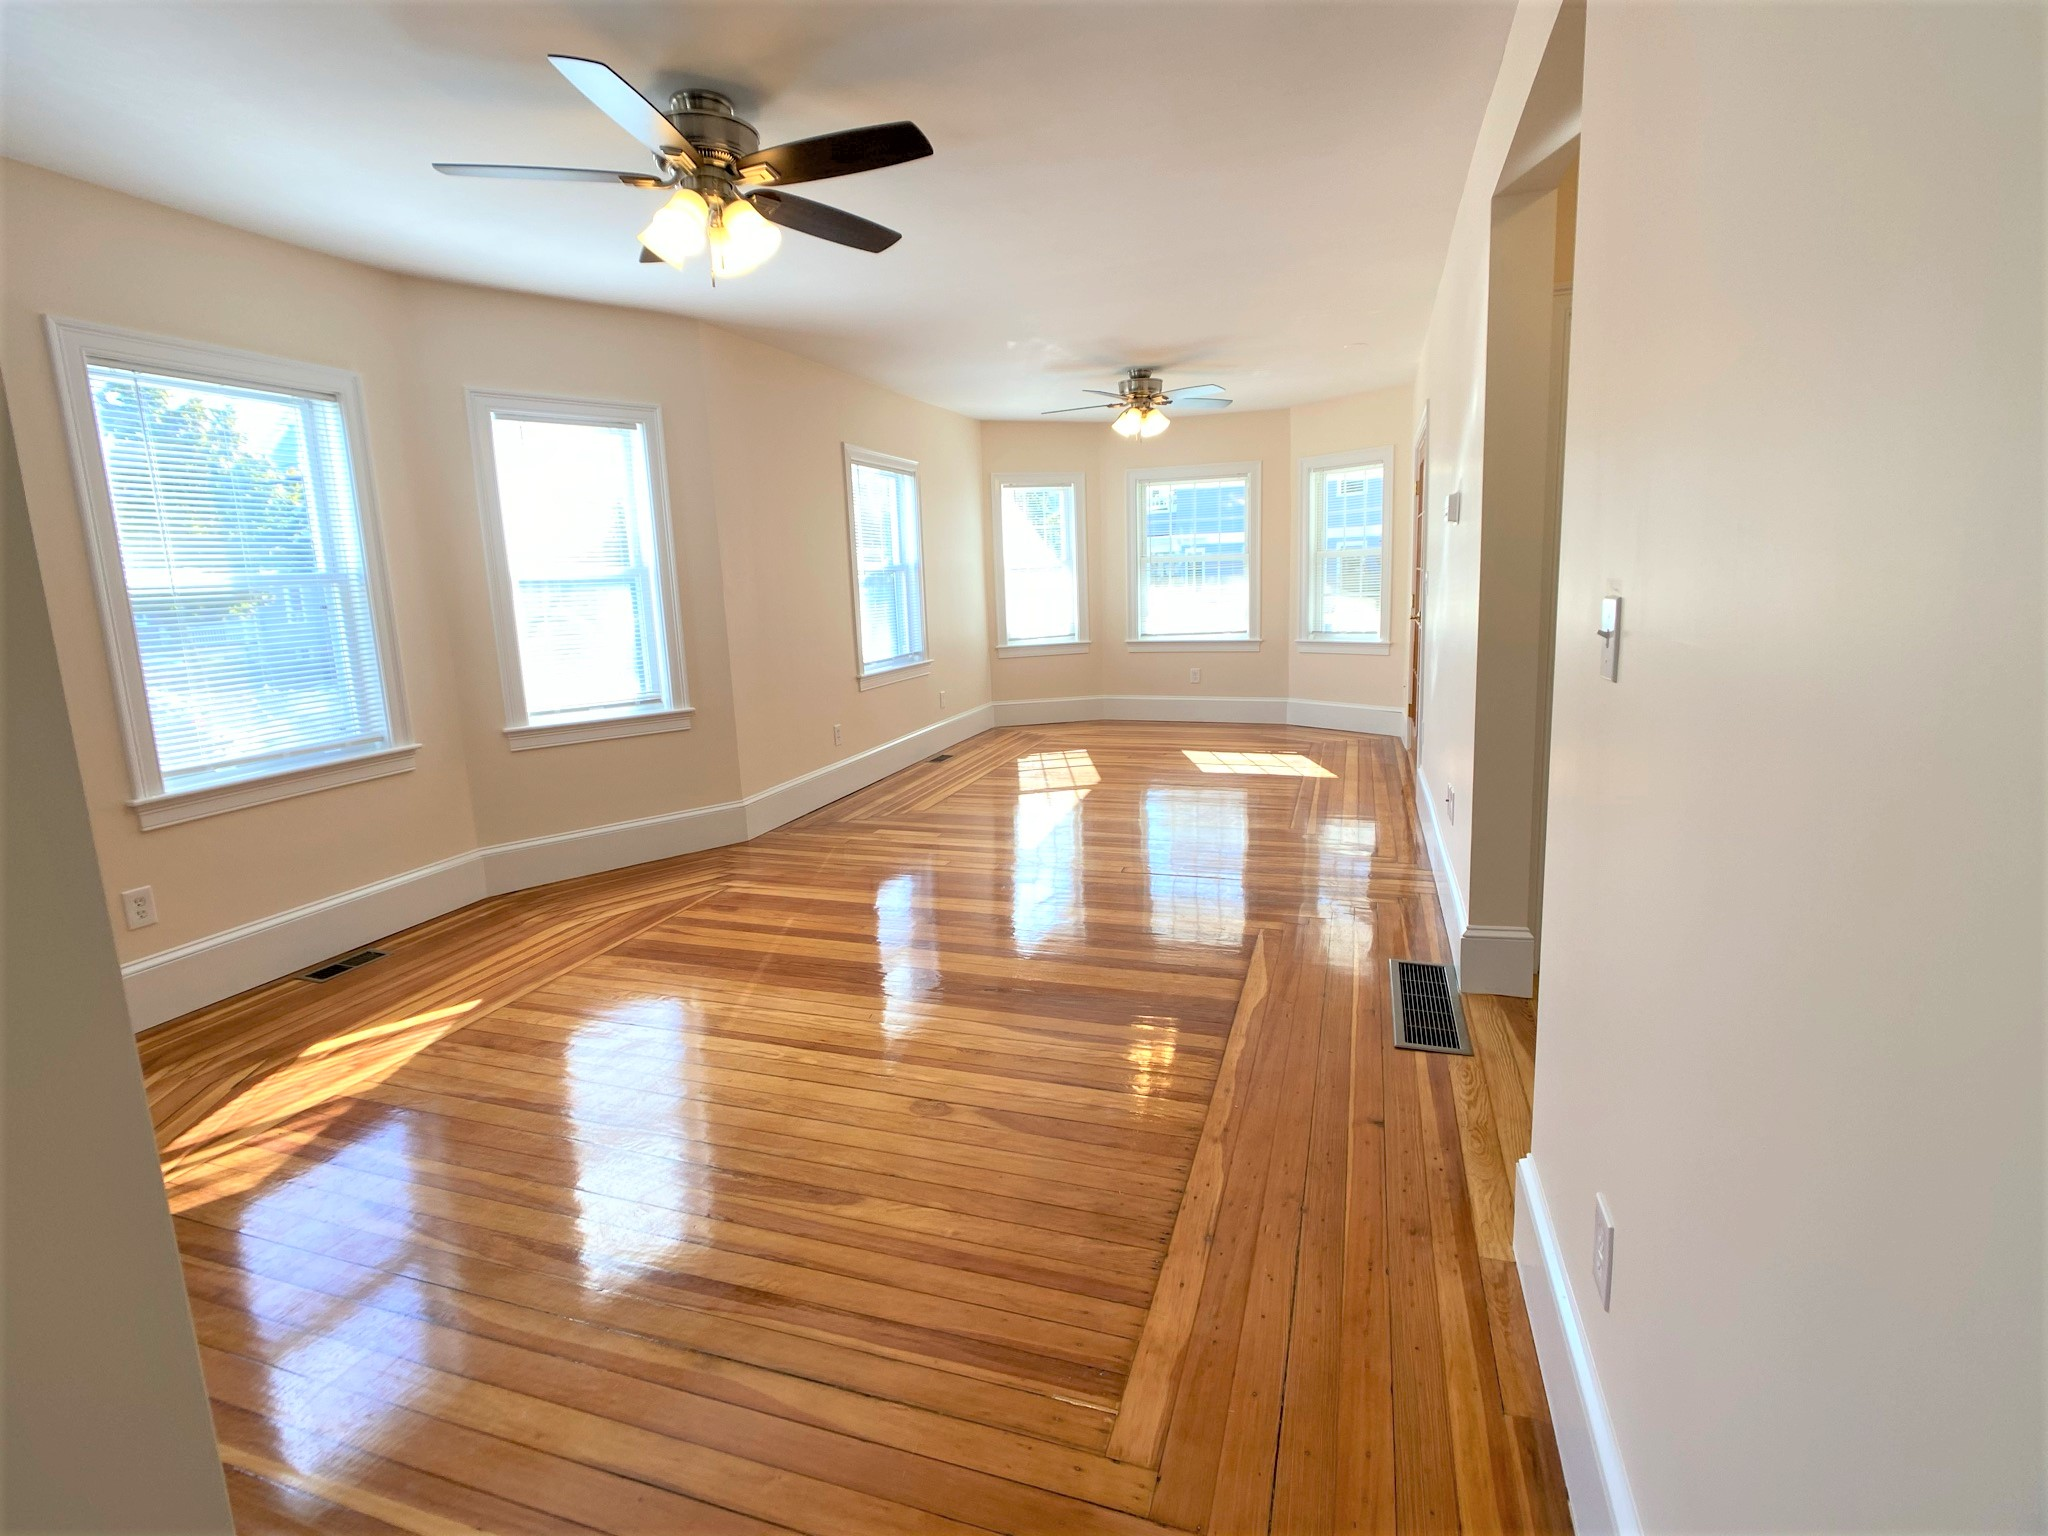 3 Beds, 1 Bath apartment in Medford, Tufts University for $900